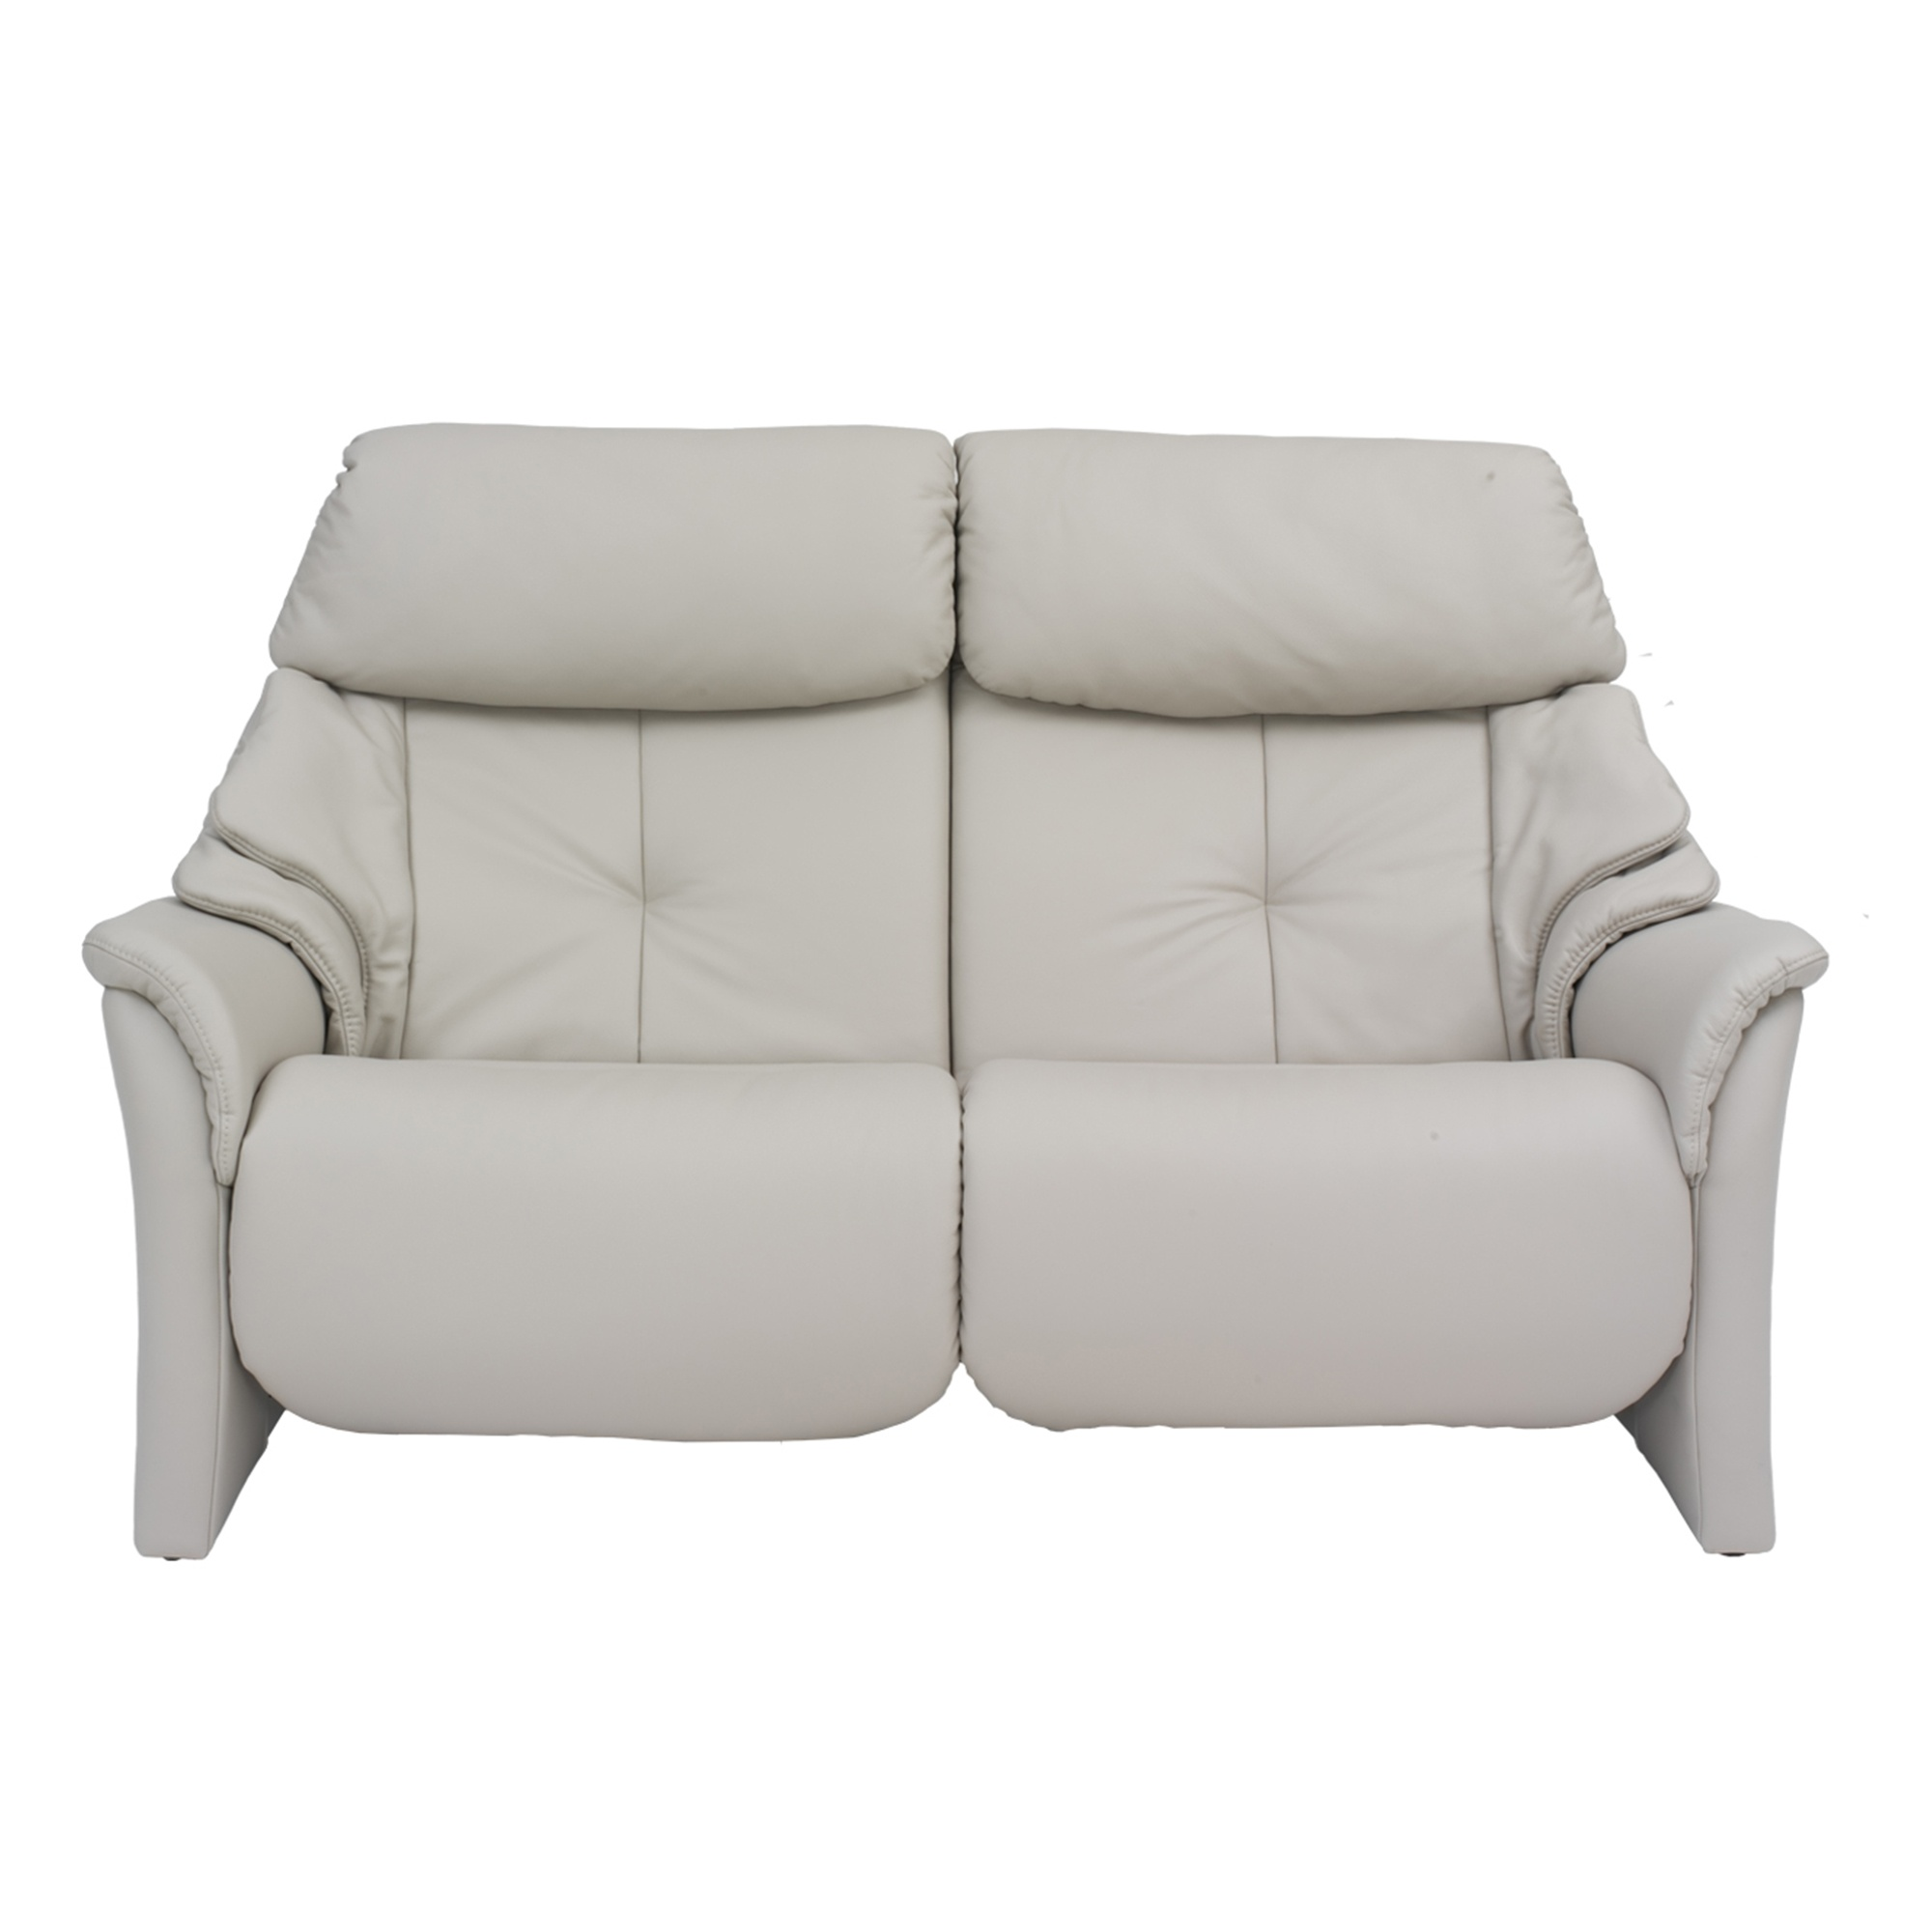 Himolla Chester 2 5 Seater Electric Recliner Sofa All Sofas Cookes Furniture